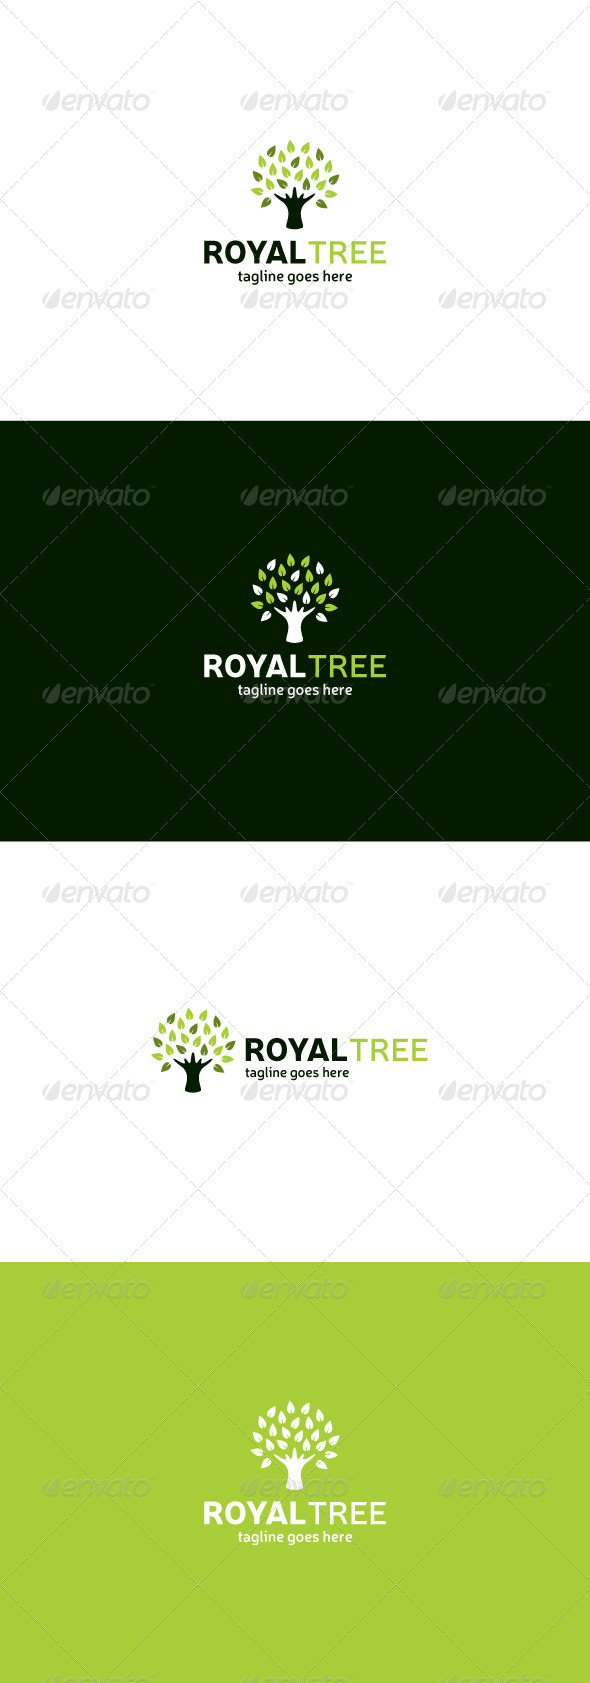 GraphicRiver Royal Tree Logo 8073555